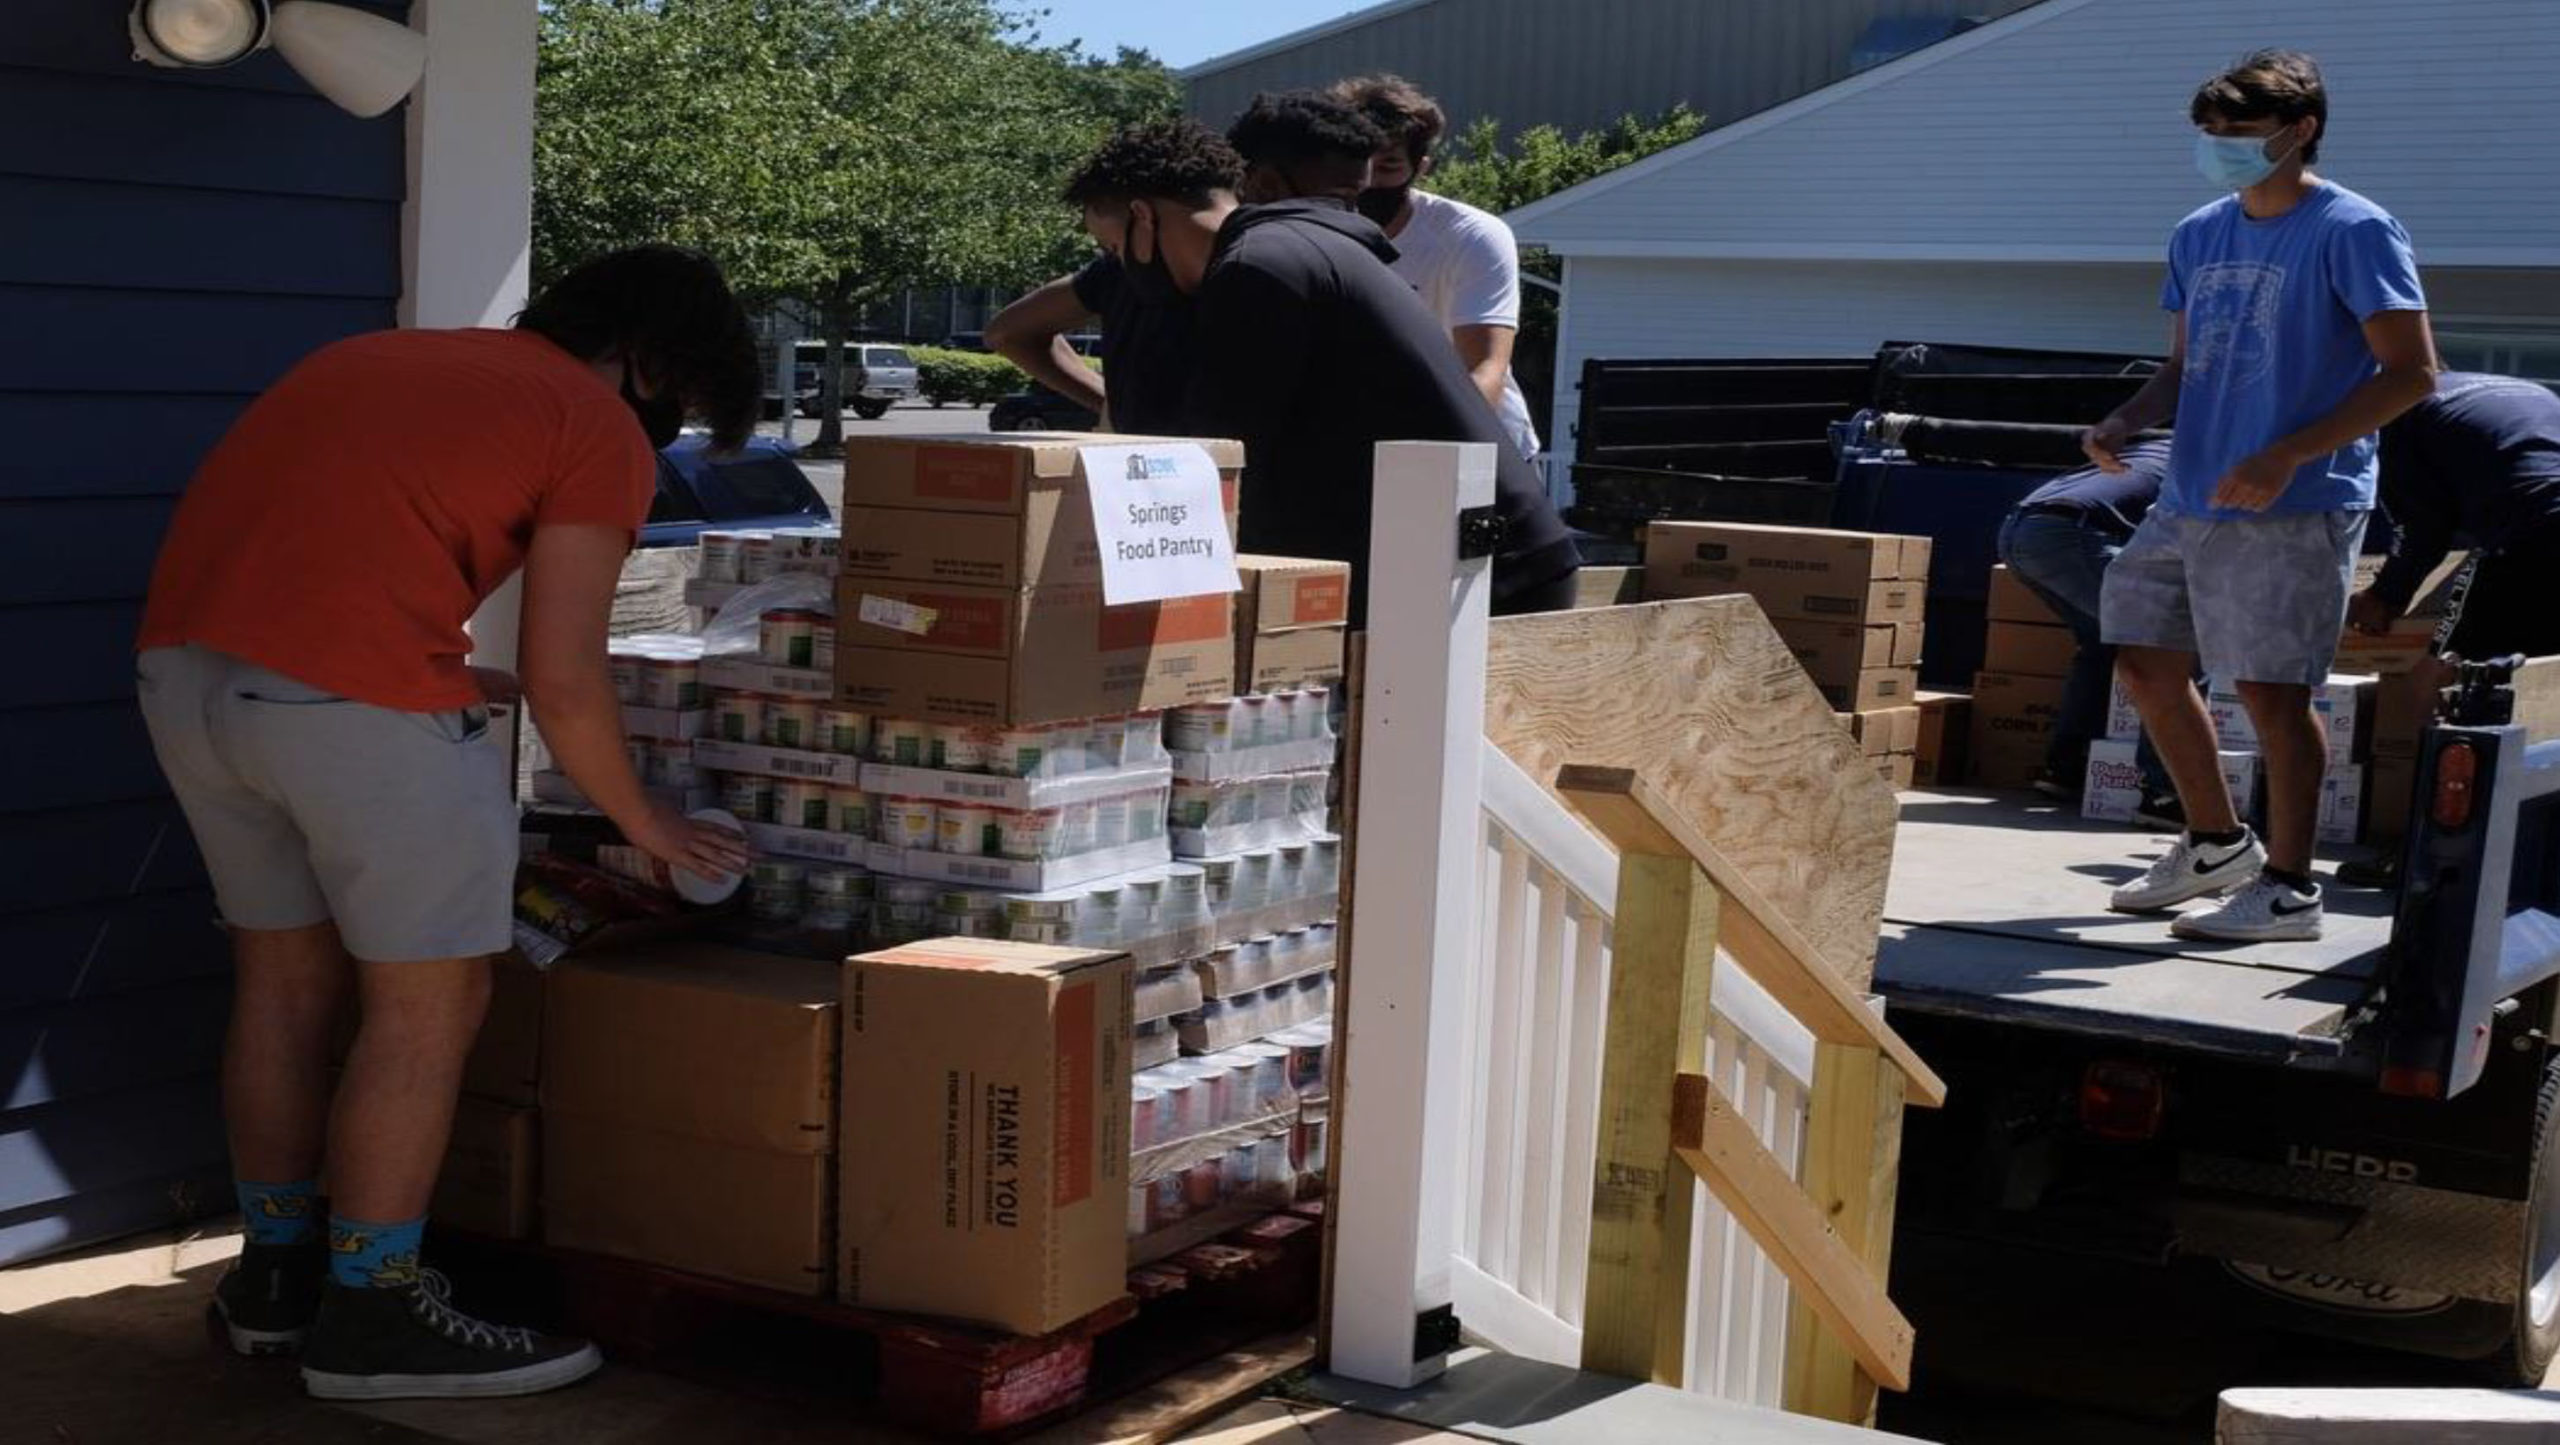 Rock star Jon Bon Jovi and his wife Dorothea's charity, JBJ Soul Foundation, spent $500,000 over the summer to   create a food bank for South Fork food pantries. The food bank and its volunteers distributed 238 tons of food to local residents over 18 weeks from May to September.